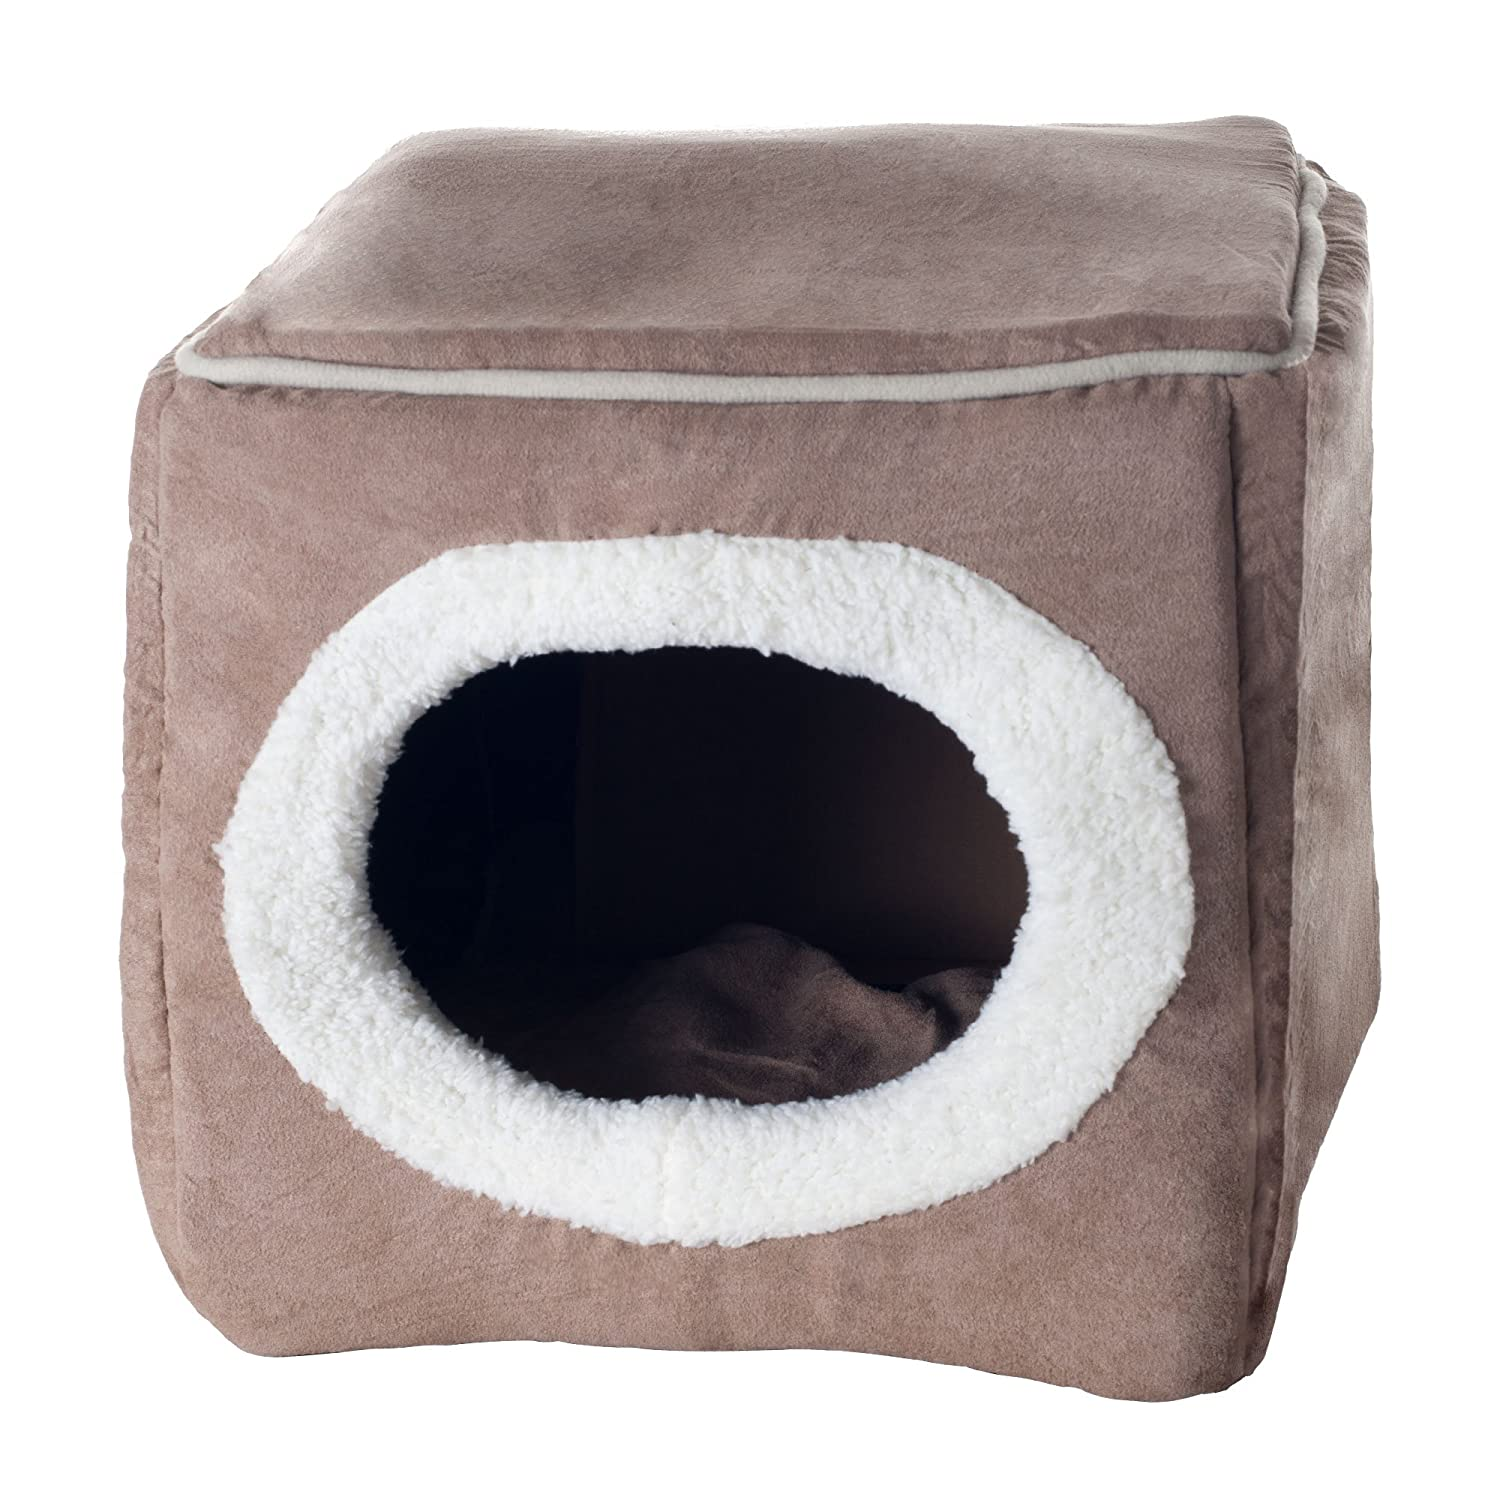 cave products cozy snoozer clemson bed nesting luxury dog microsuede